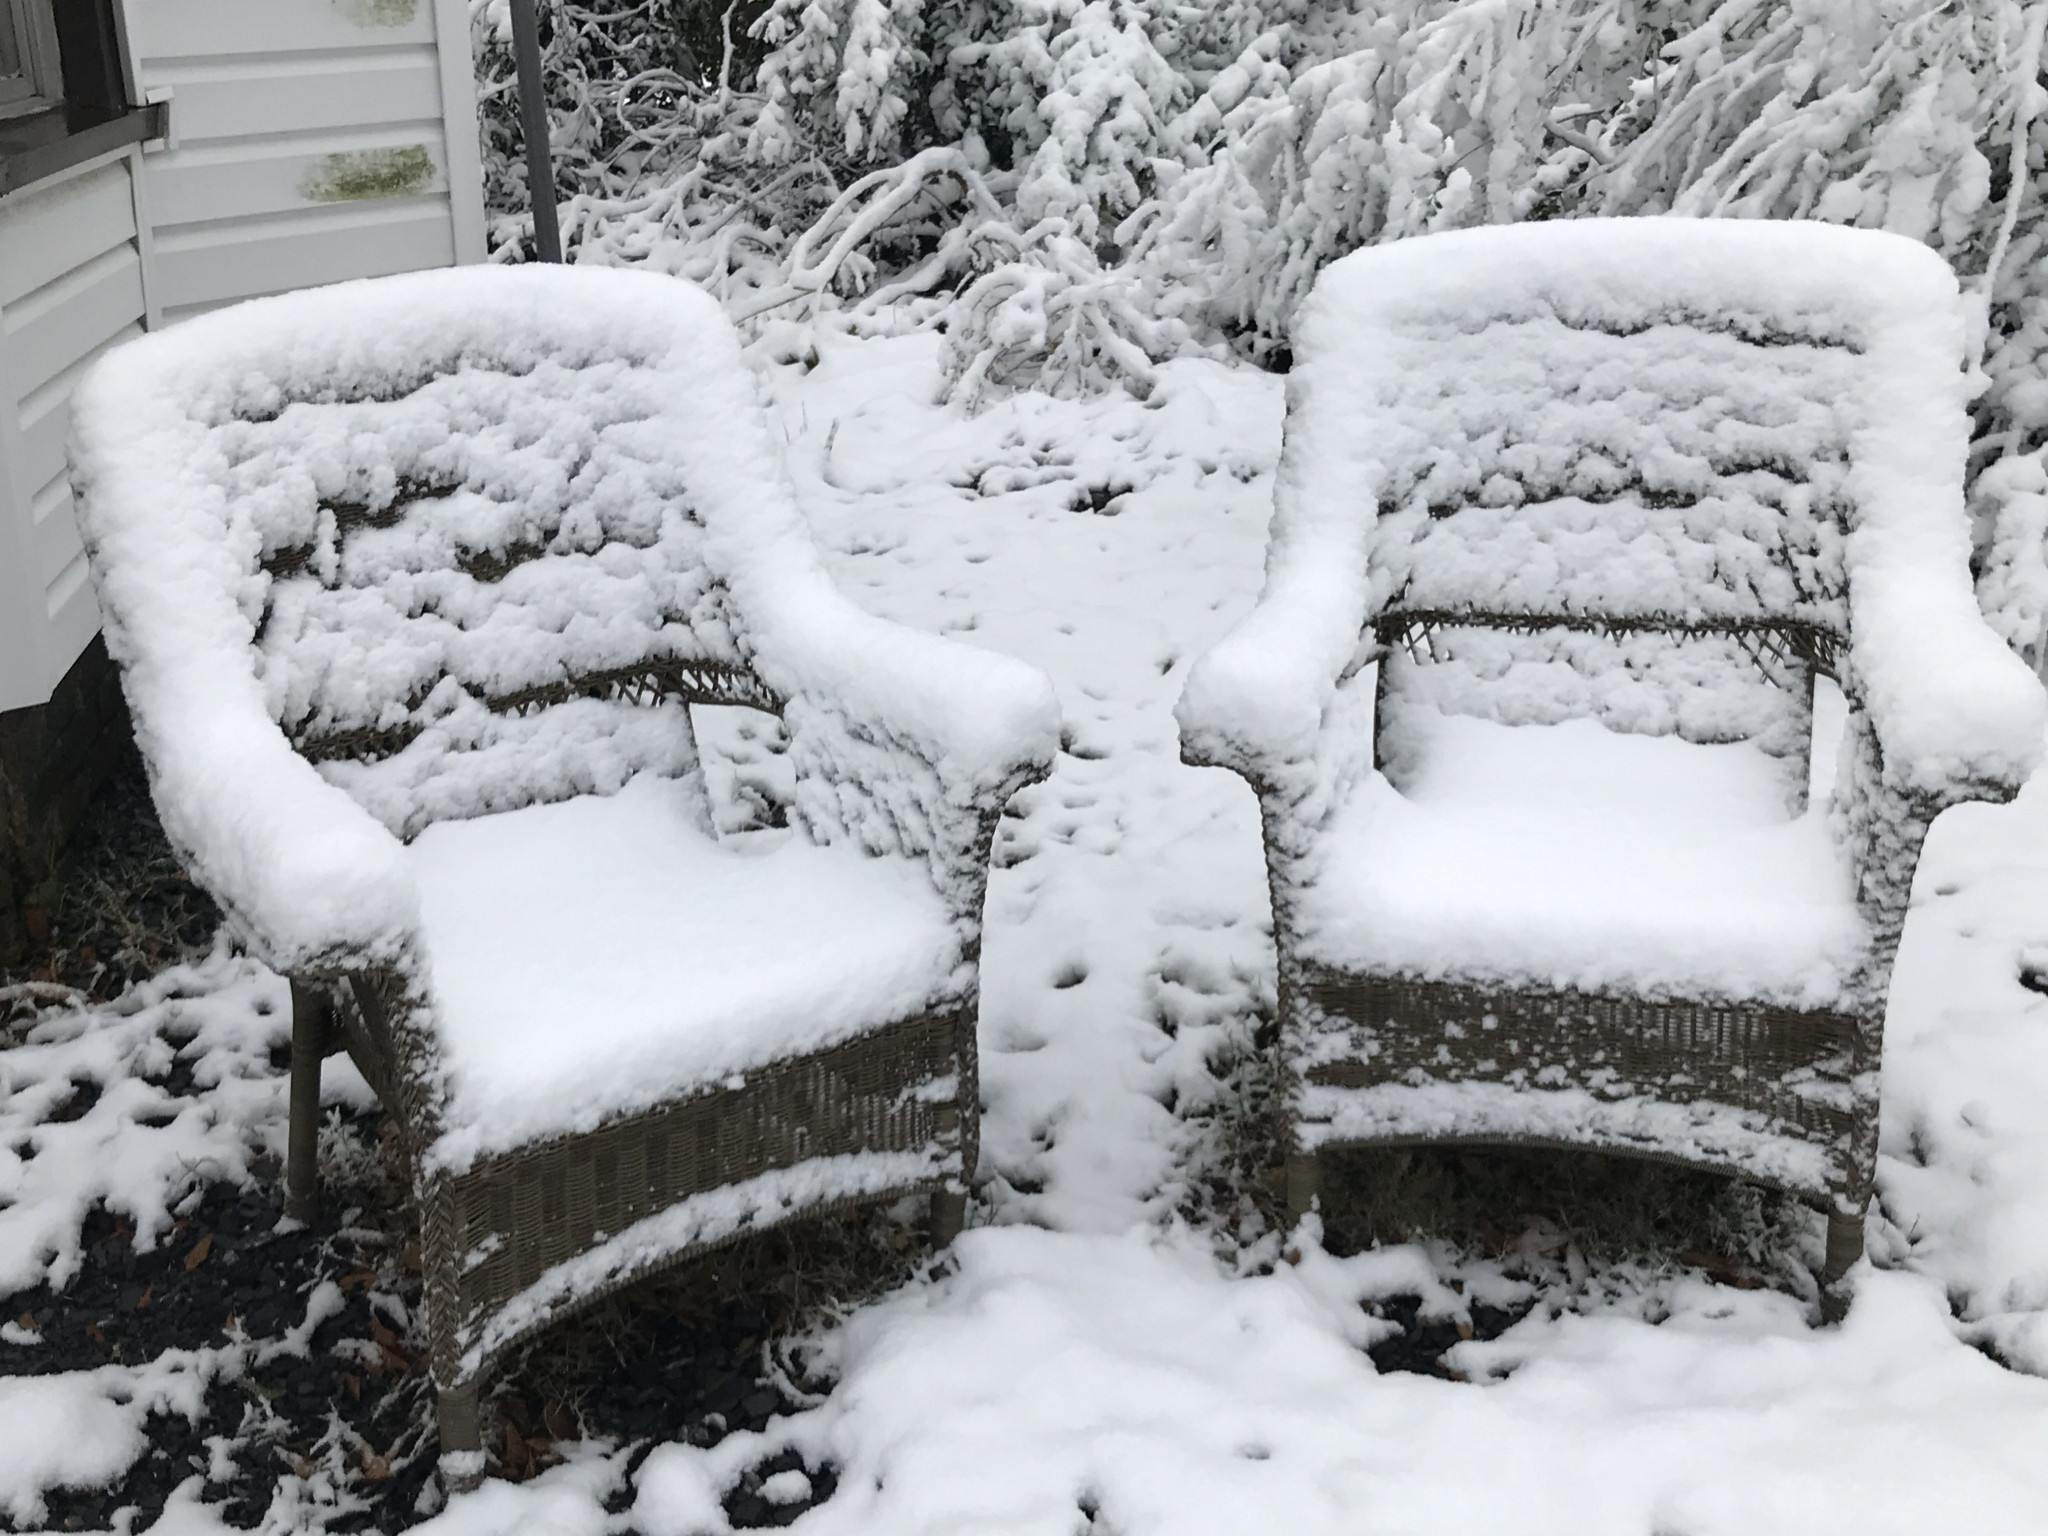 Some frosty chairs on an Evans Street lawn - Leader photo by Caleb Daniel